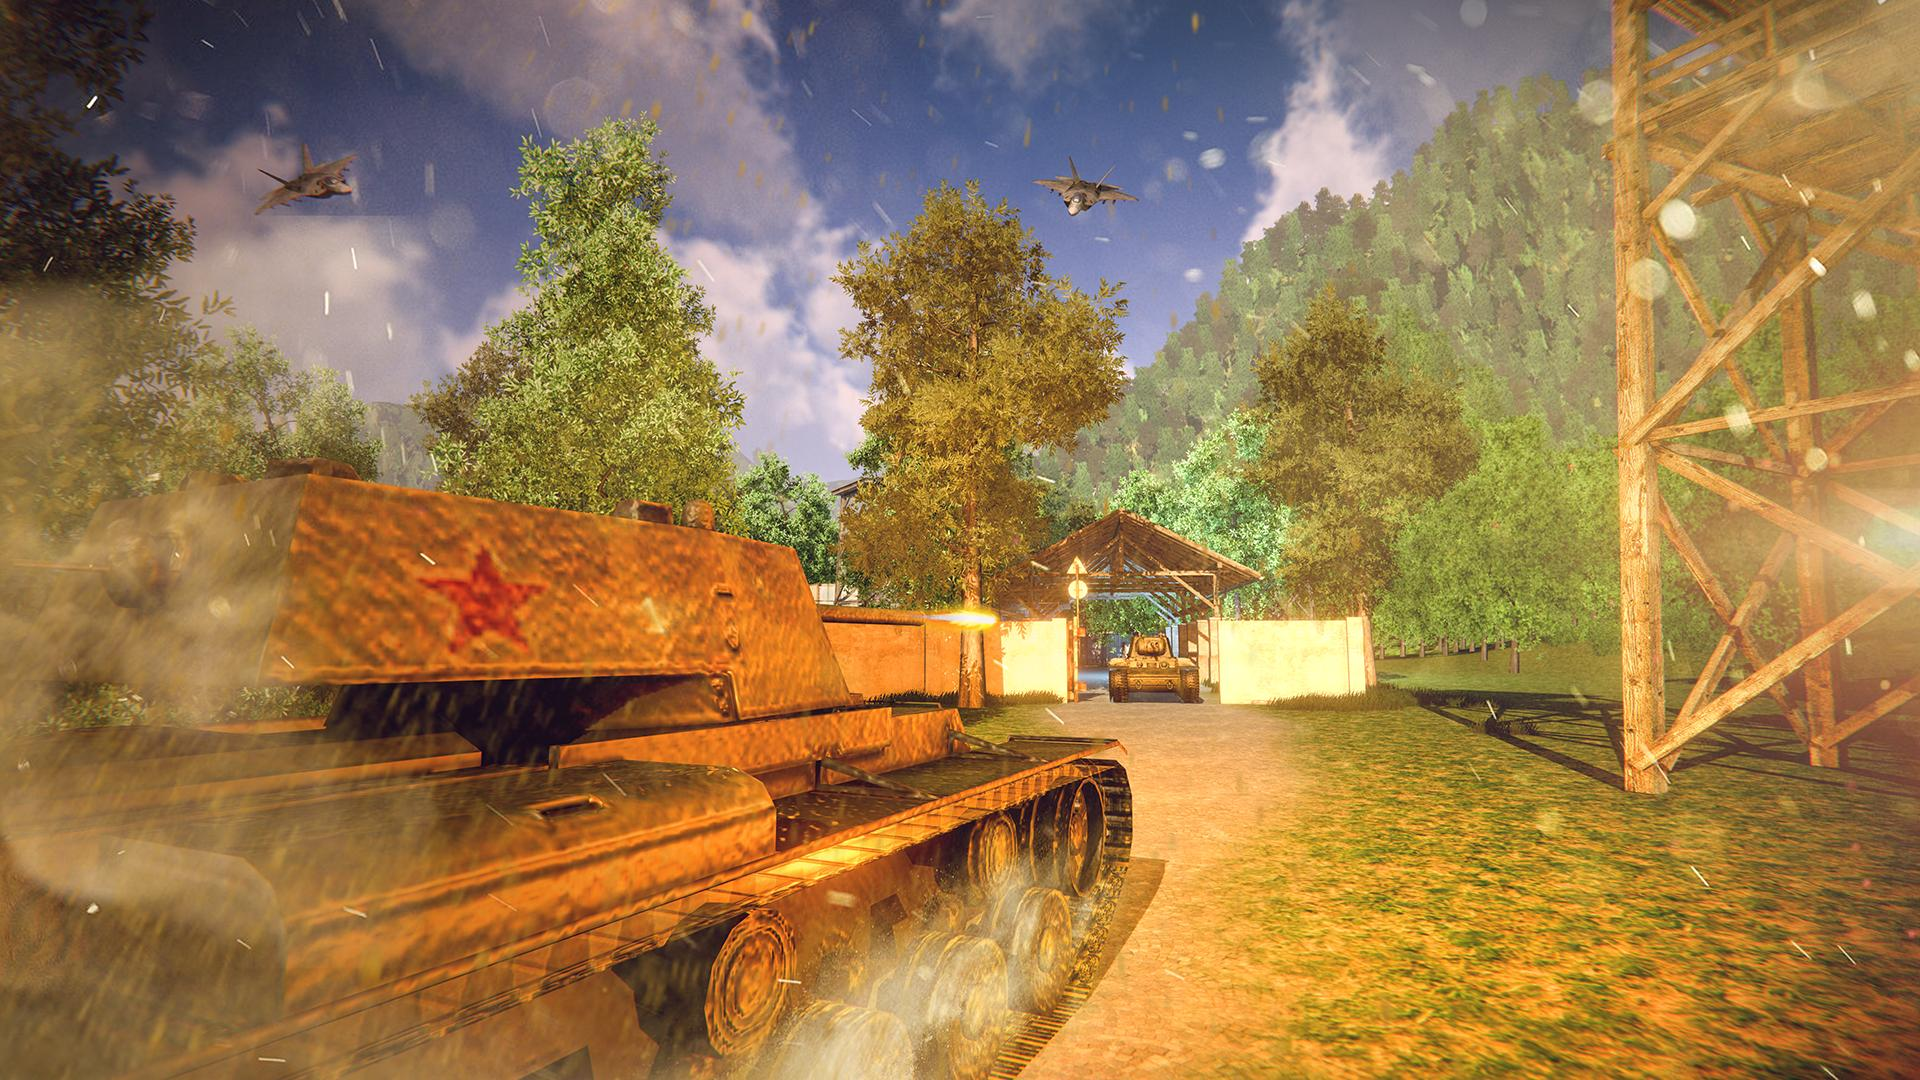 Tank Games 2020 Free Tank Battle Army Combat Games 1.3 Screenshot 9